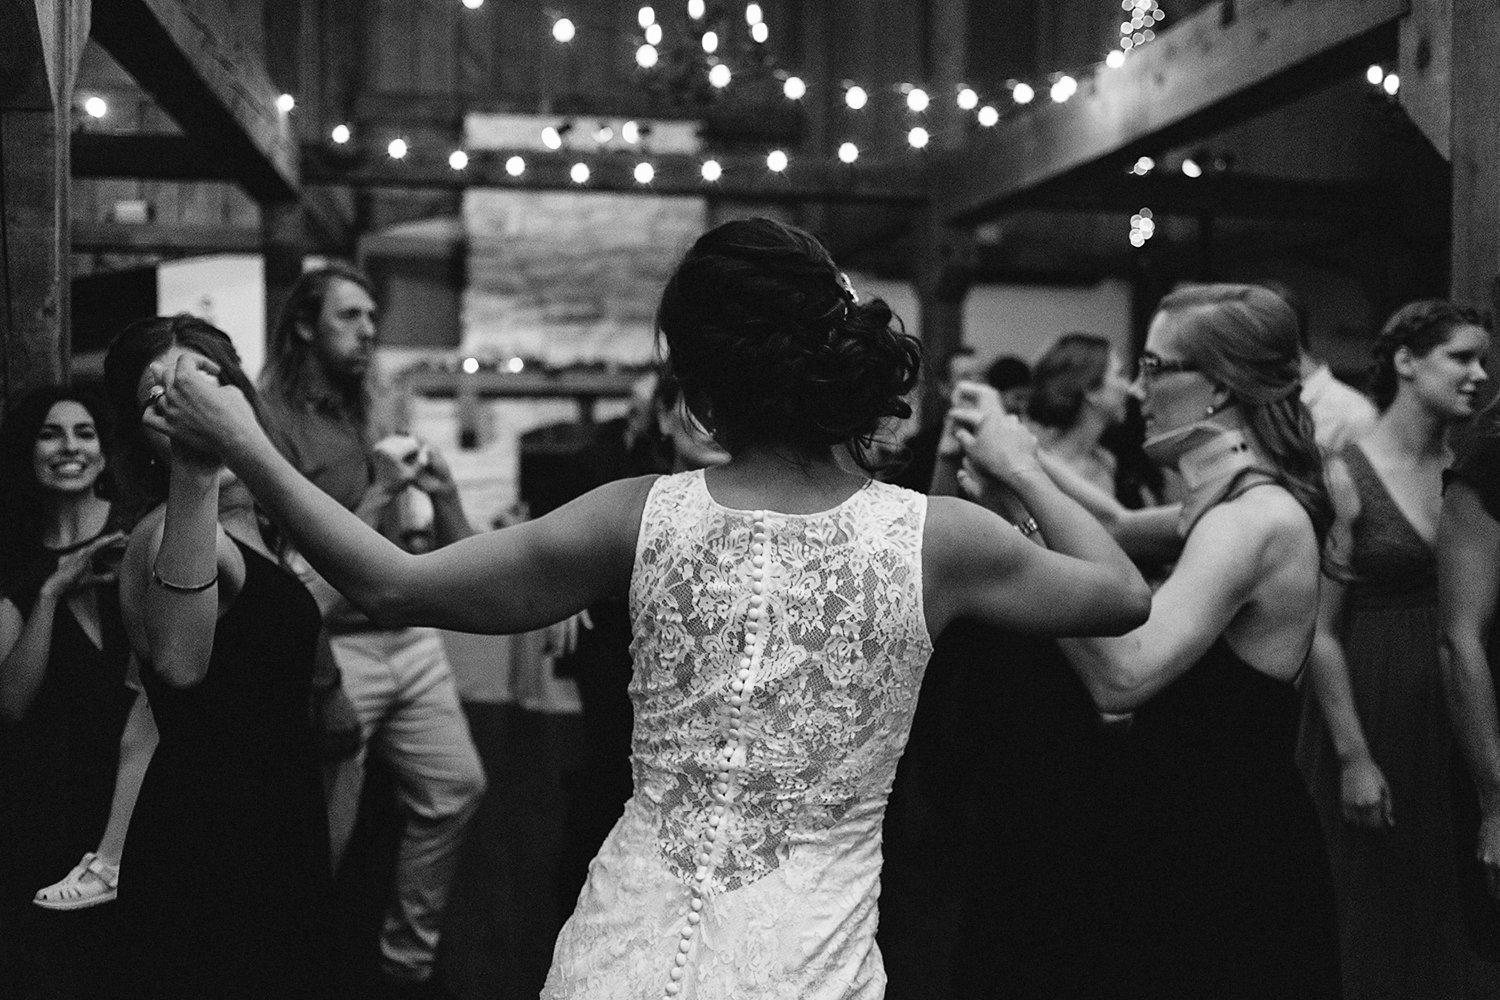 party-guests-dancing-having-fun-partying-hugging-candid-moments-toronto's-best-analog-documentary-wedding-photographers-candid-photography-london-ontario-wedding-inspiration.jpg